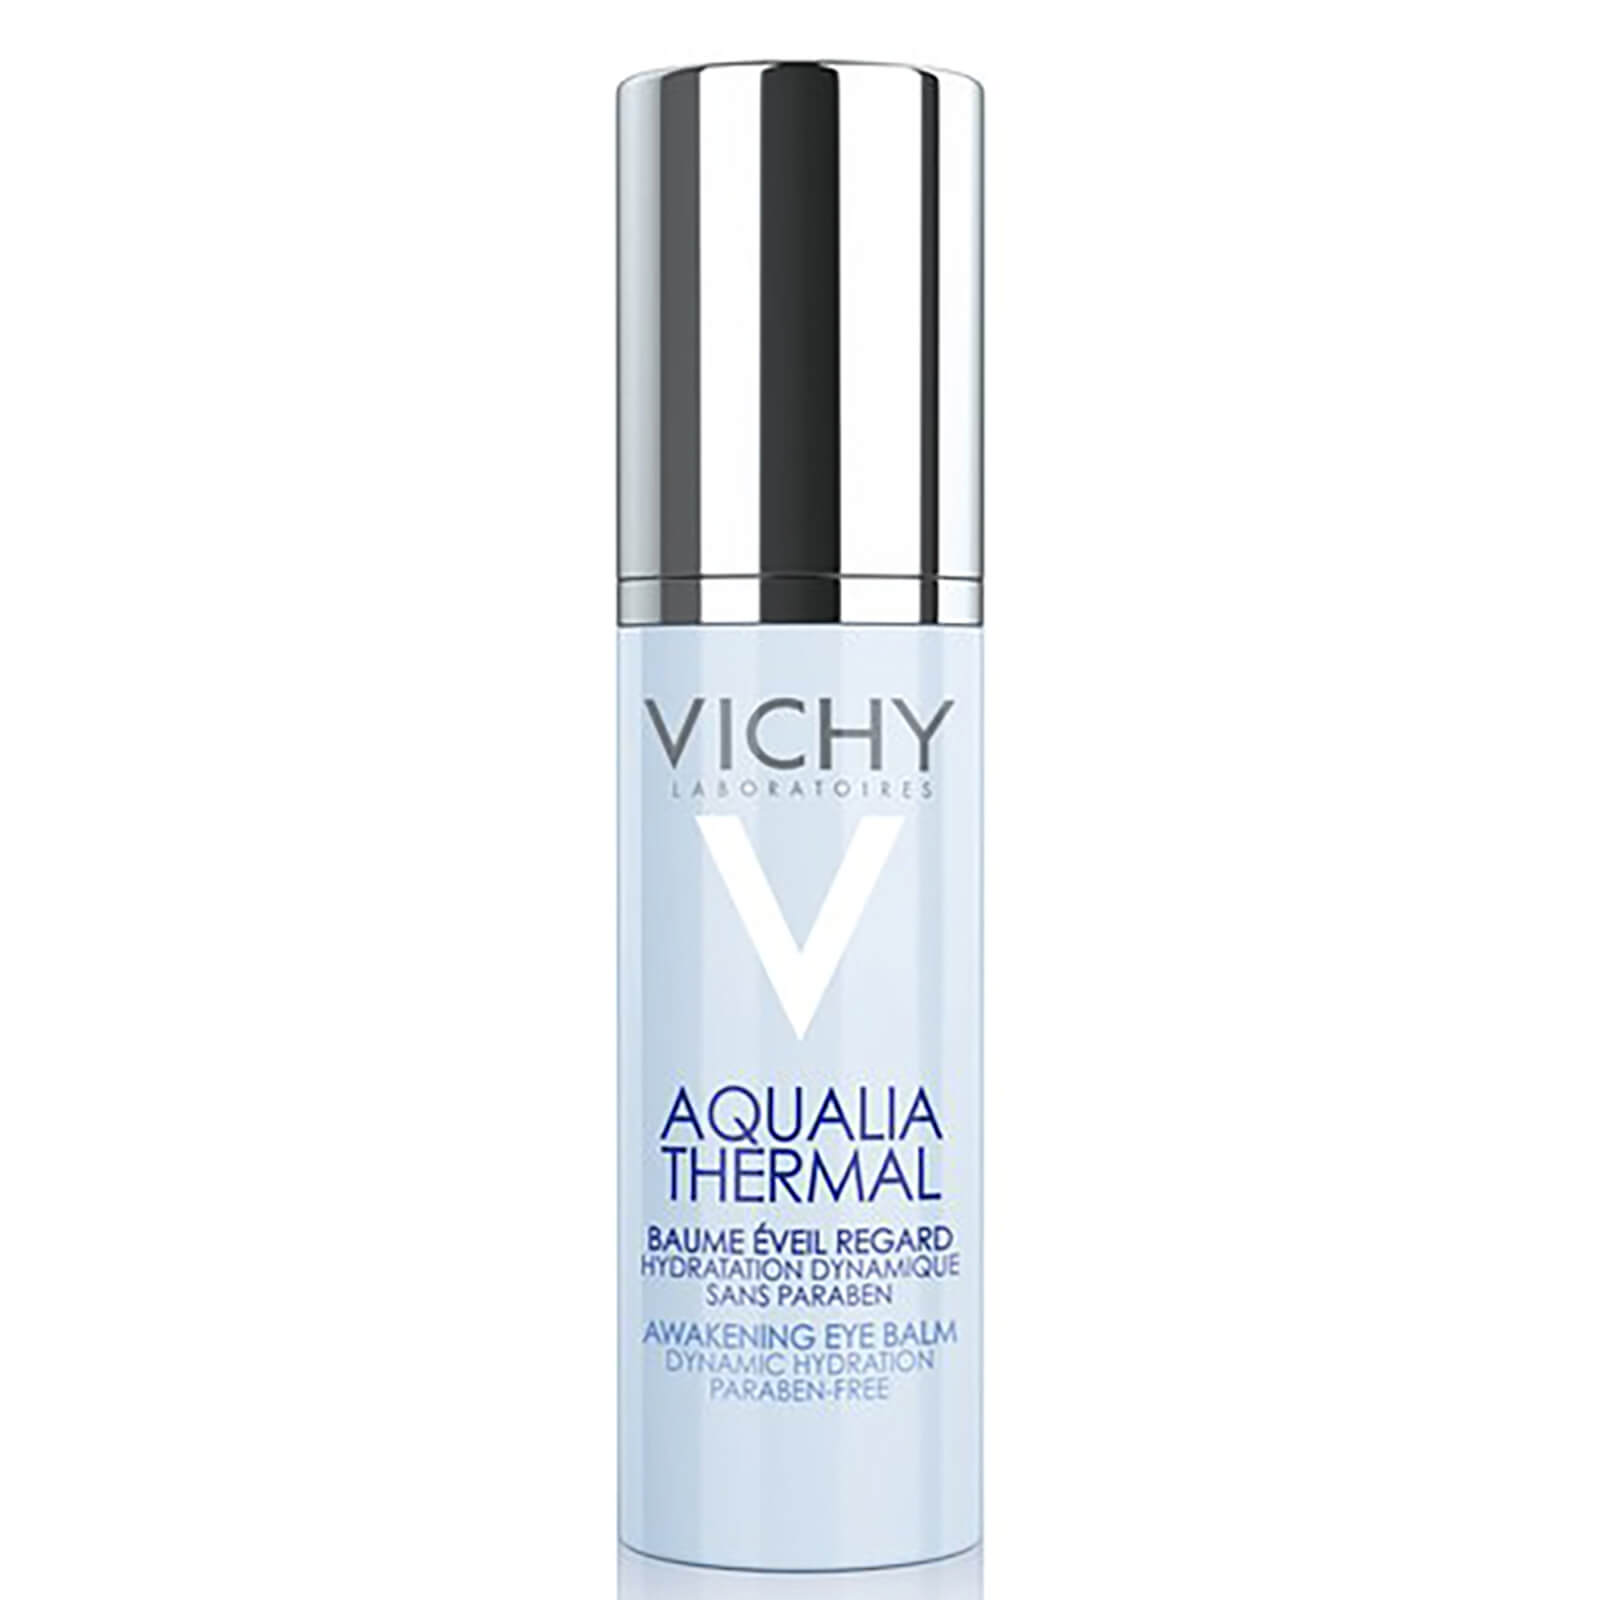 Vichy Aqualia Thermal Eye Awakening Balm (15ml)